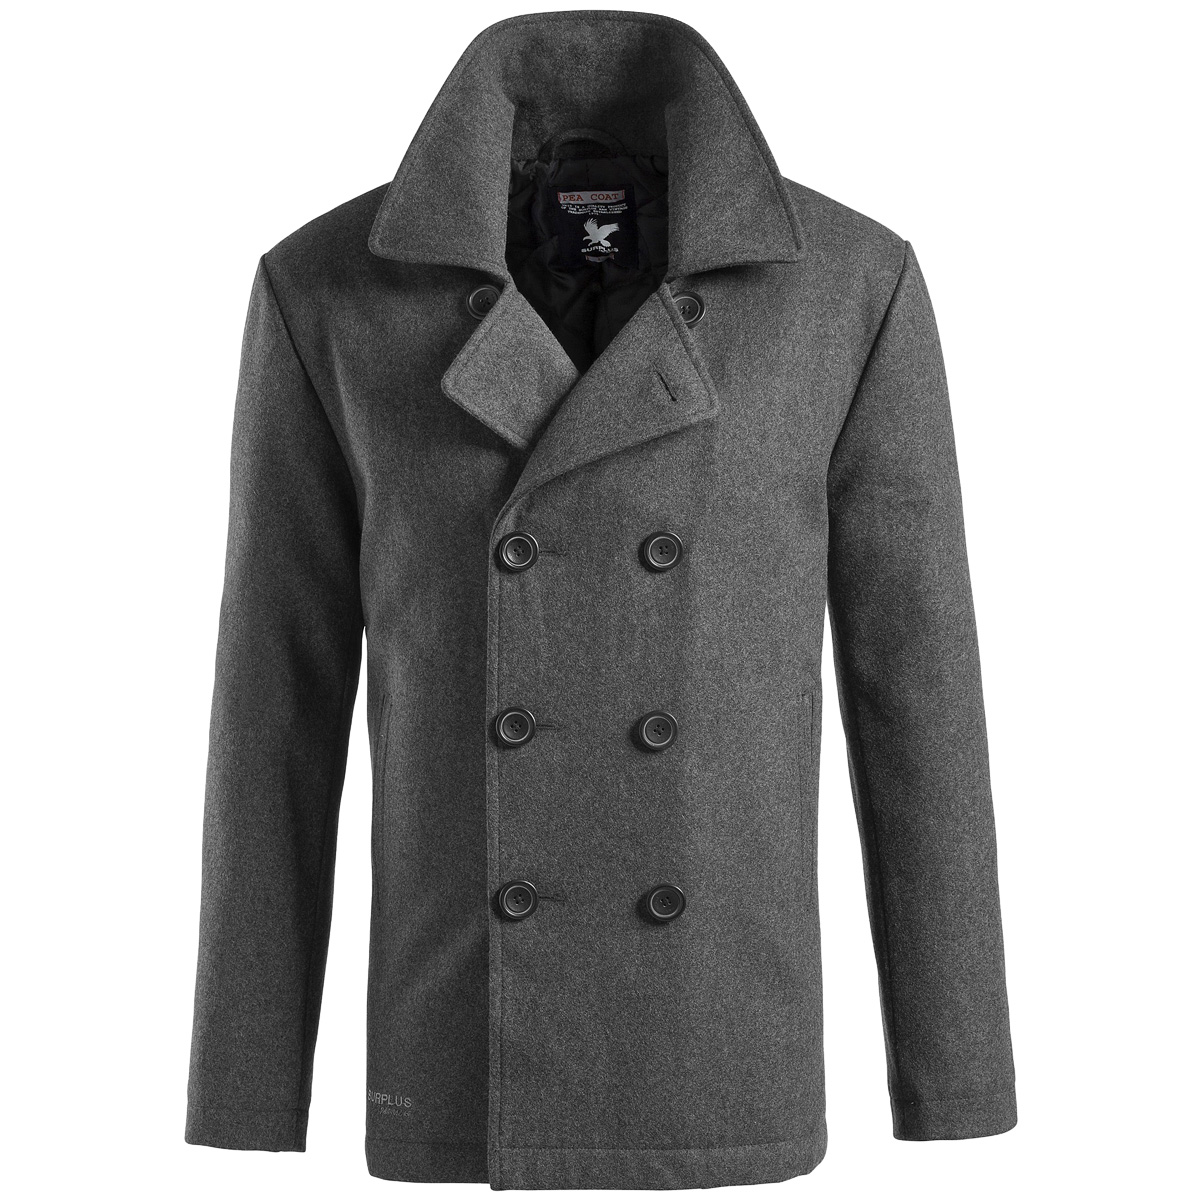 Surplus Classic Navy Pea Coat Warm Mens Winter Wool Reefer